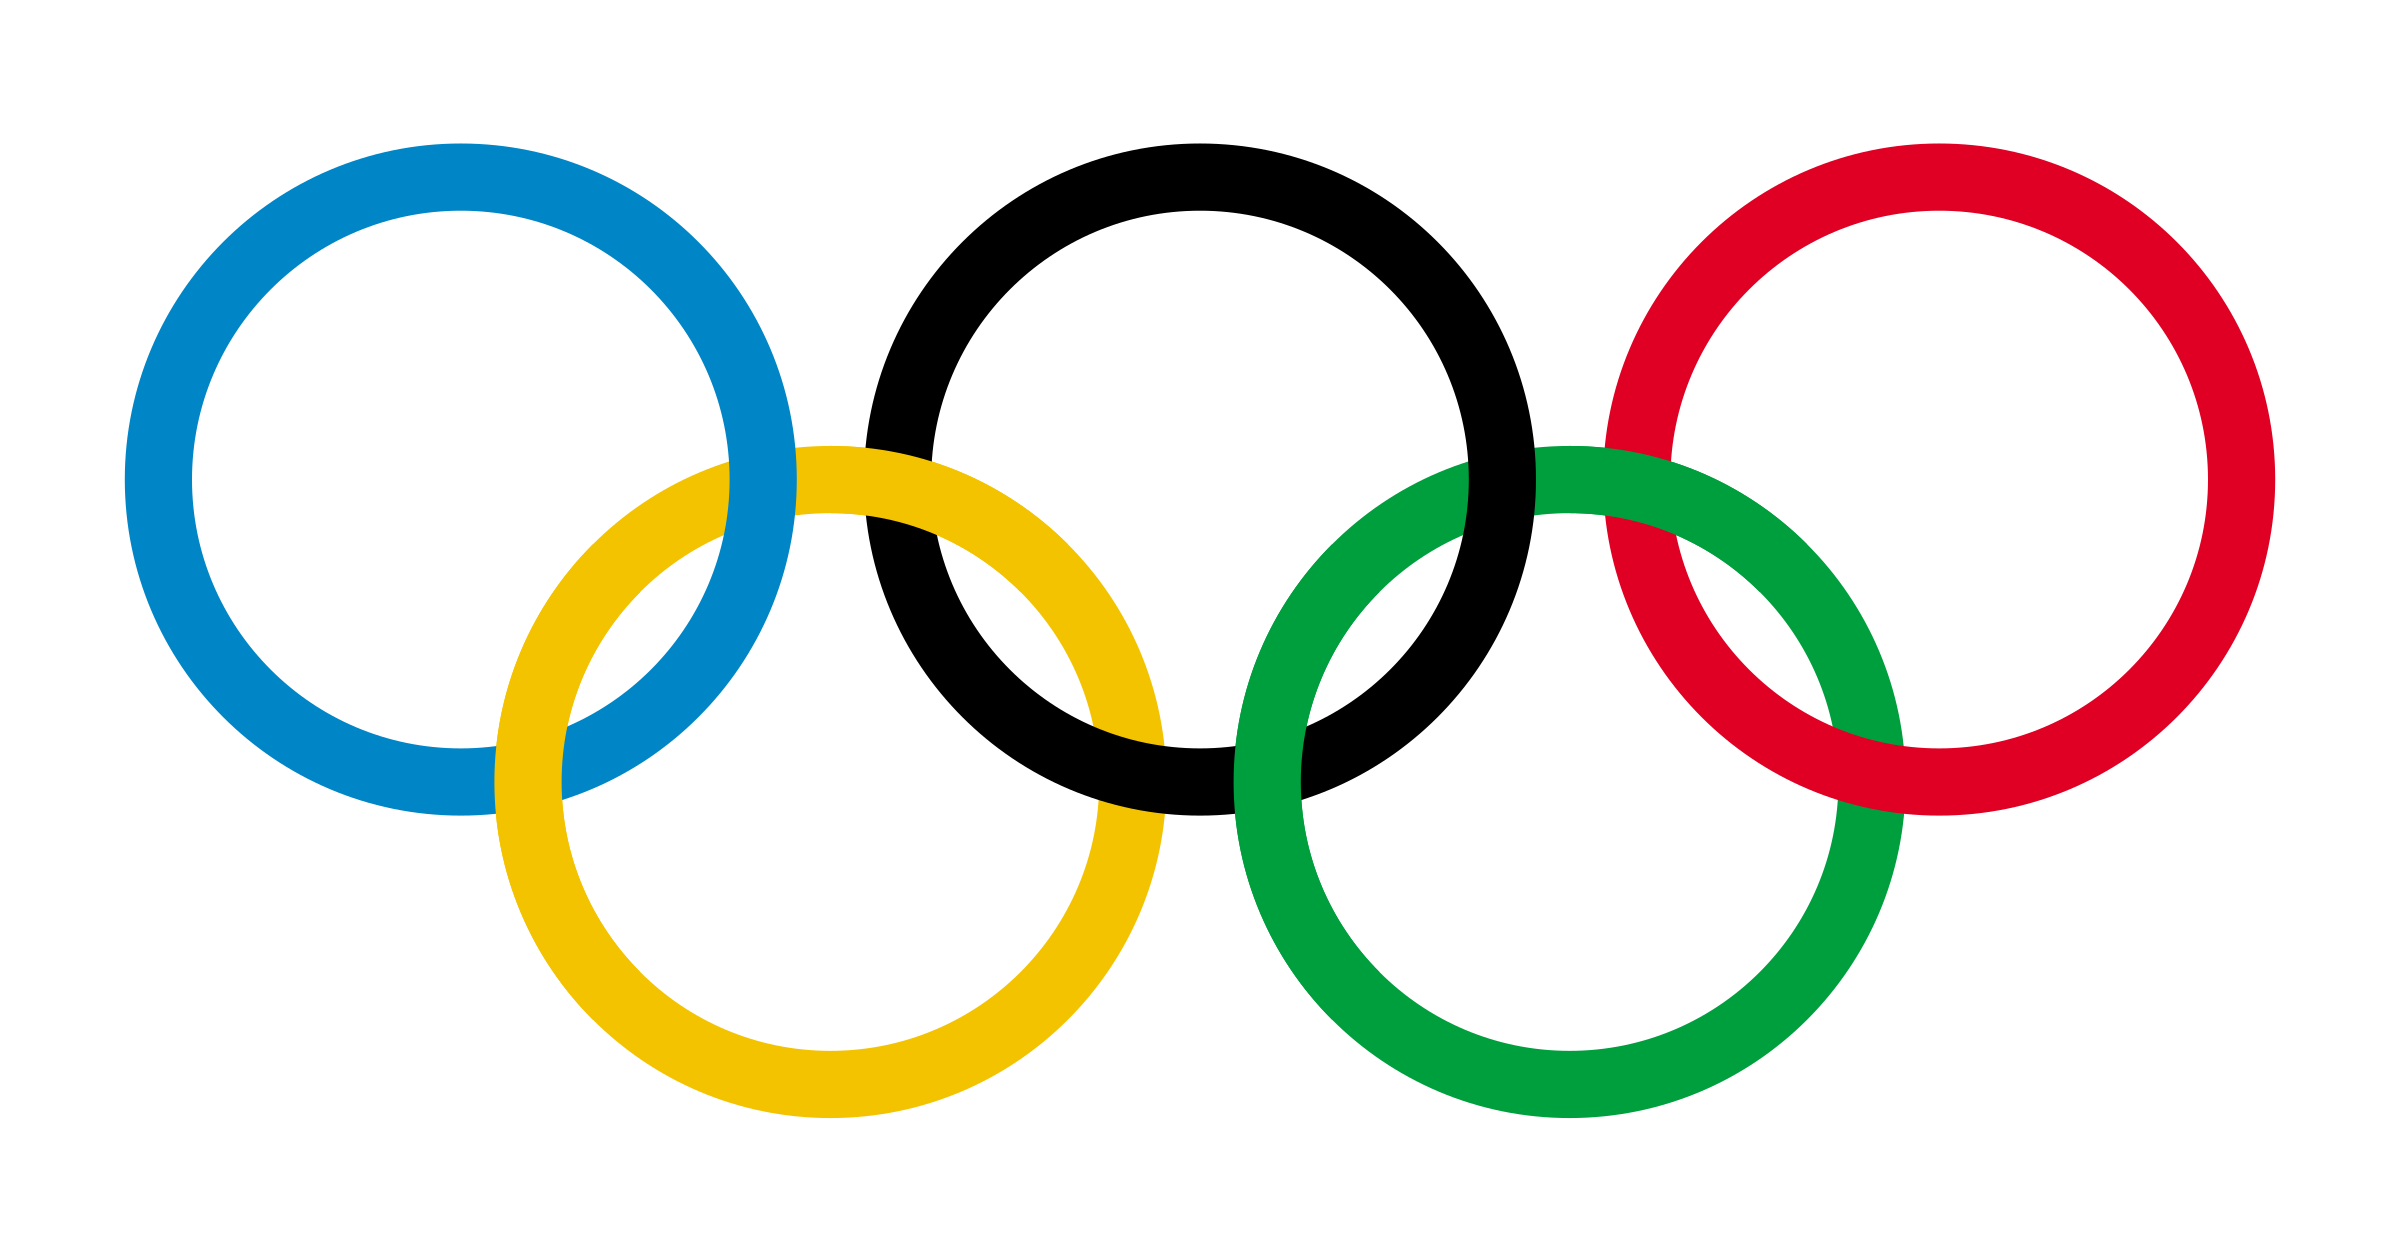 clipart olympic rings olympic rings clip art free black and white olympic rings clip art black and white